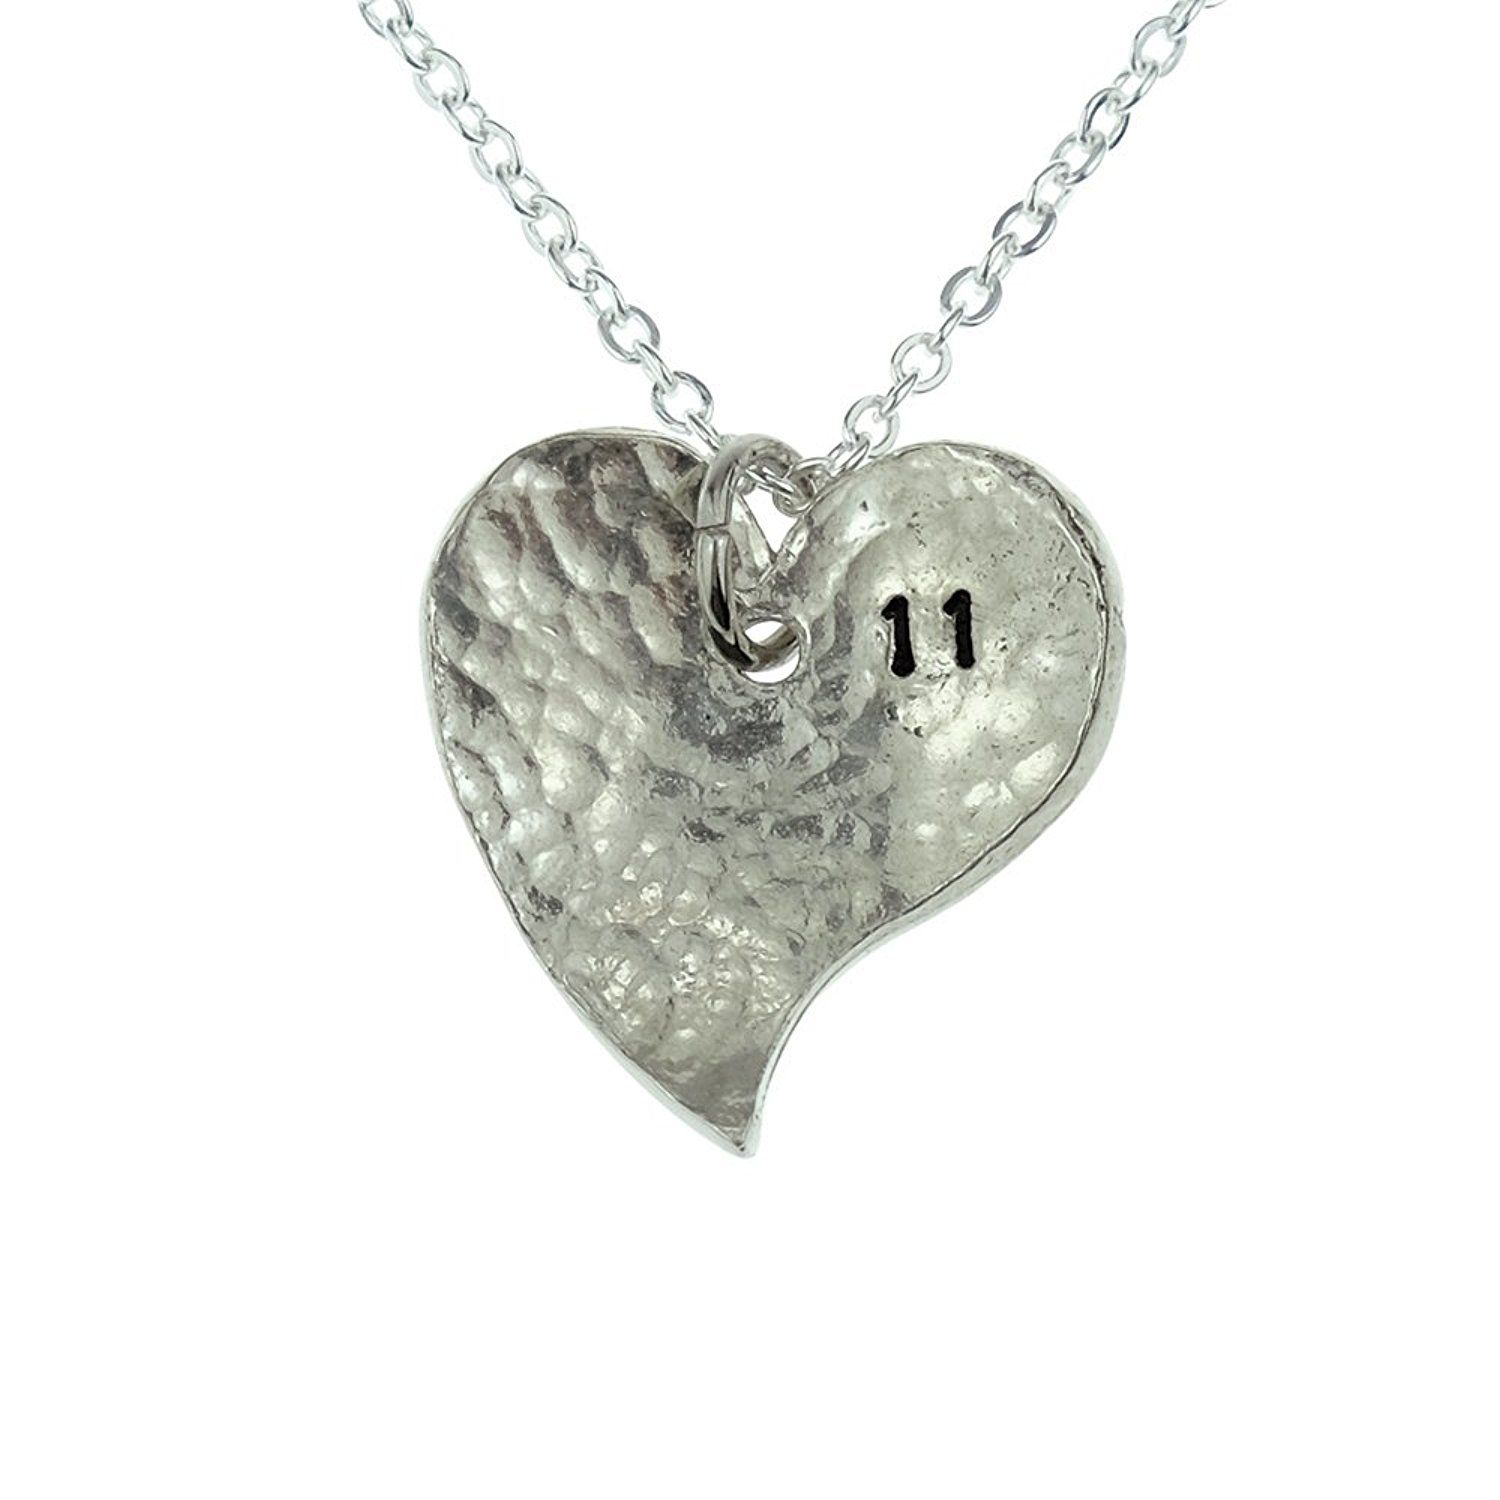 11th Anniversary Heart Necklace